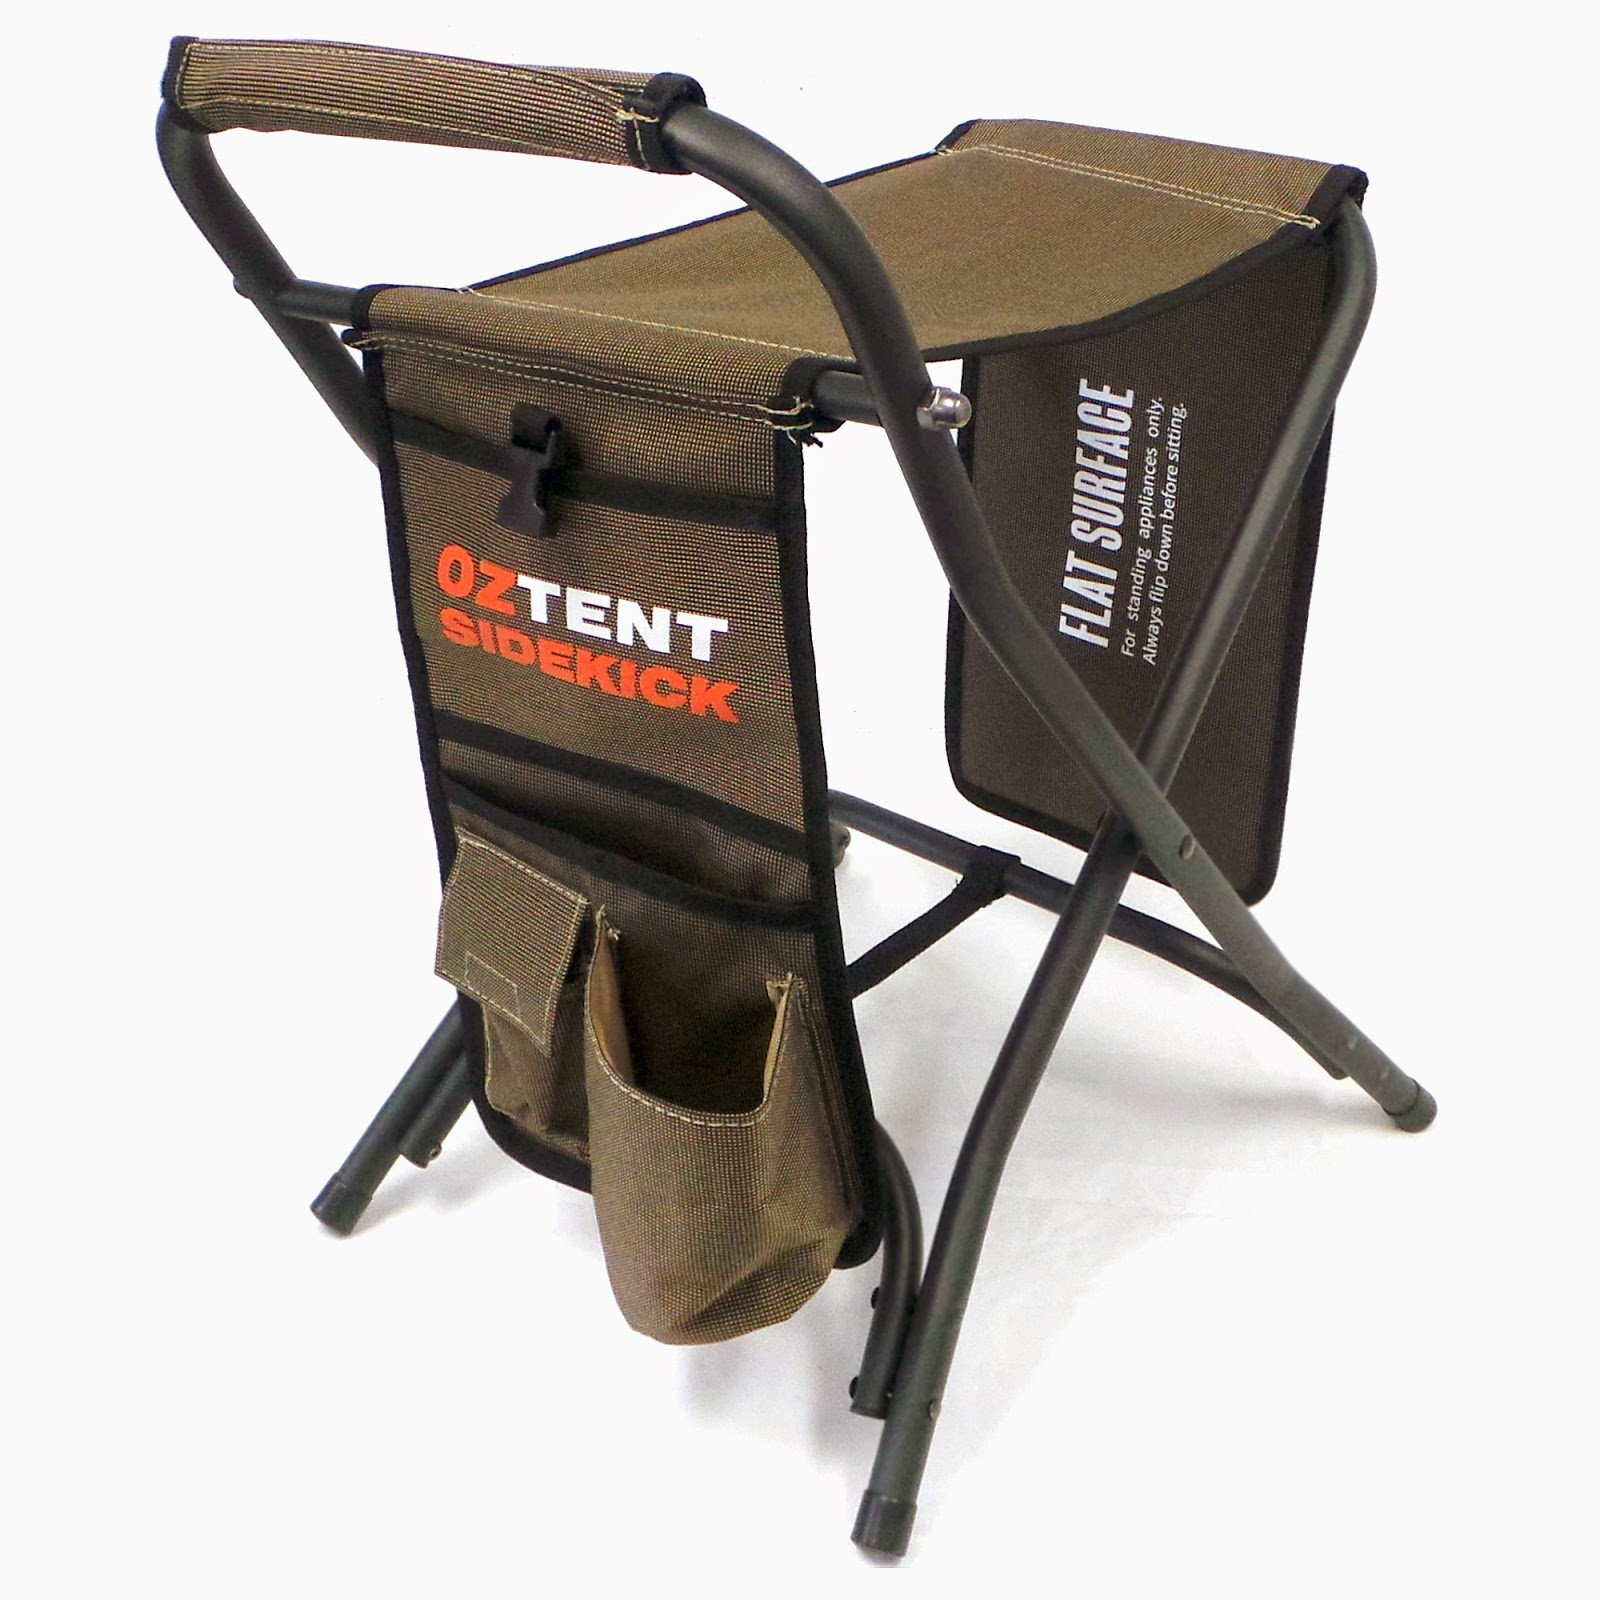 OzTent Multi Use Lightweight Backpacking Foot Rest Camping Chair Stool by OzTent